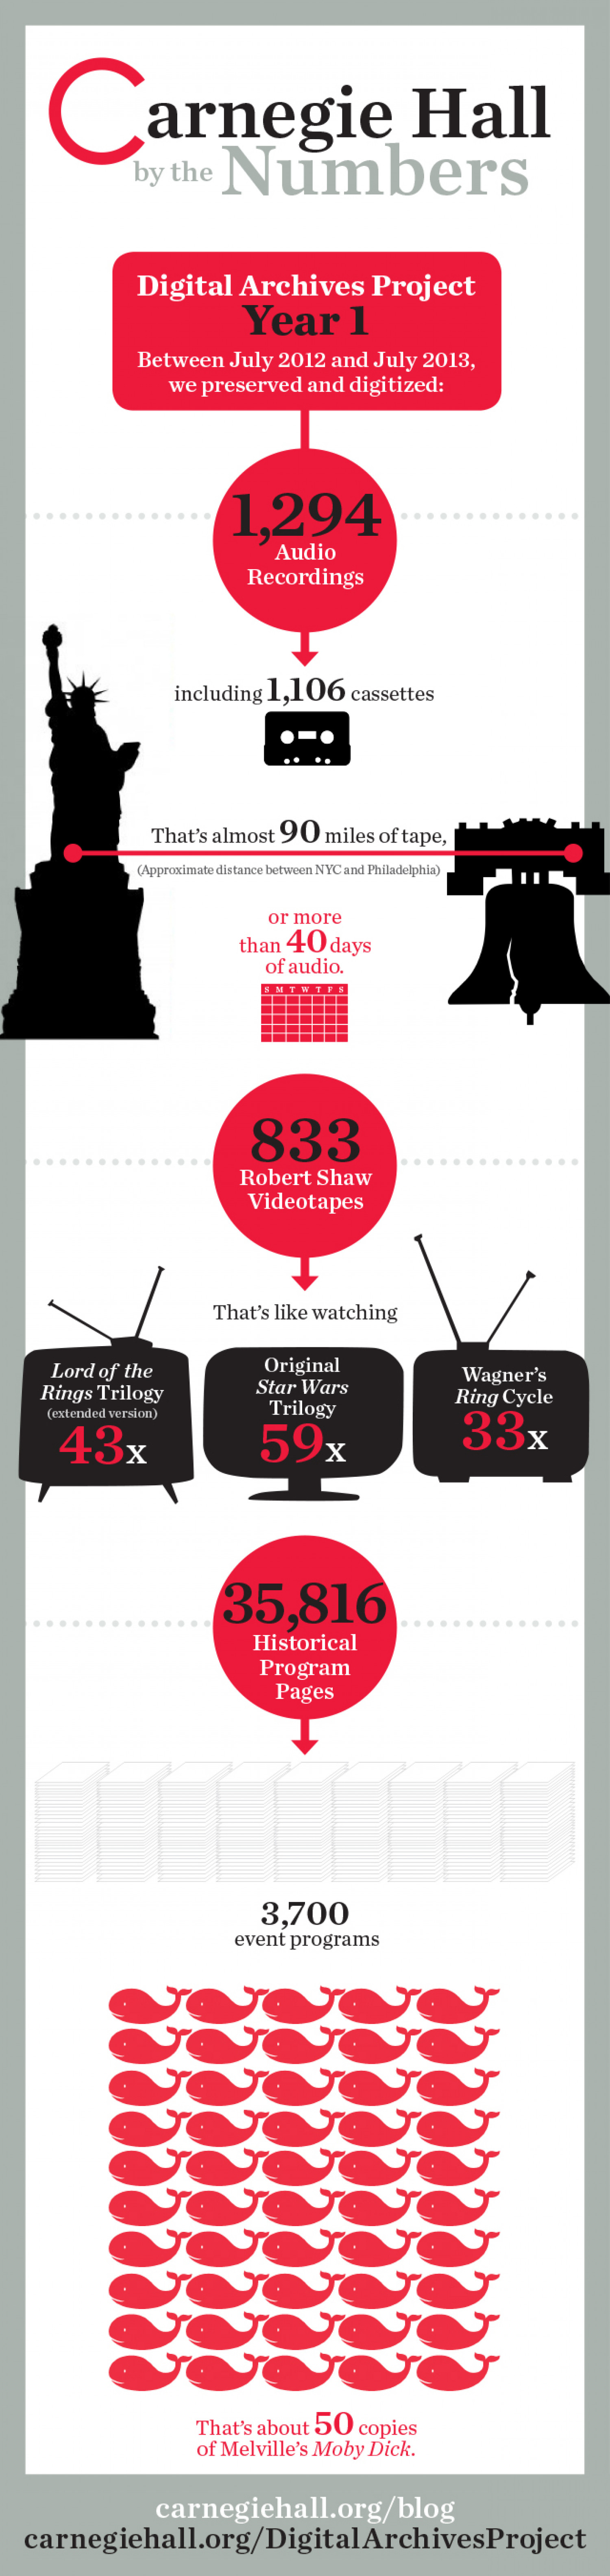 Carnegie Hall's Digital Archives Project Infographic